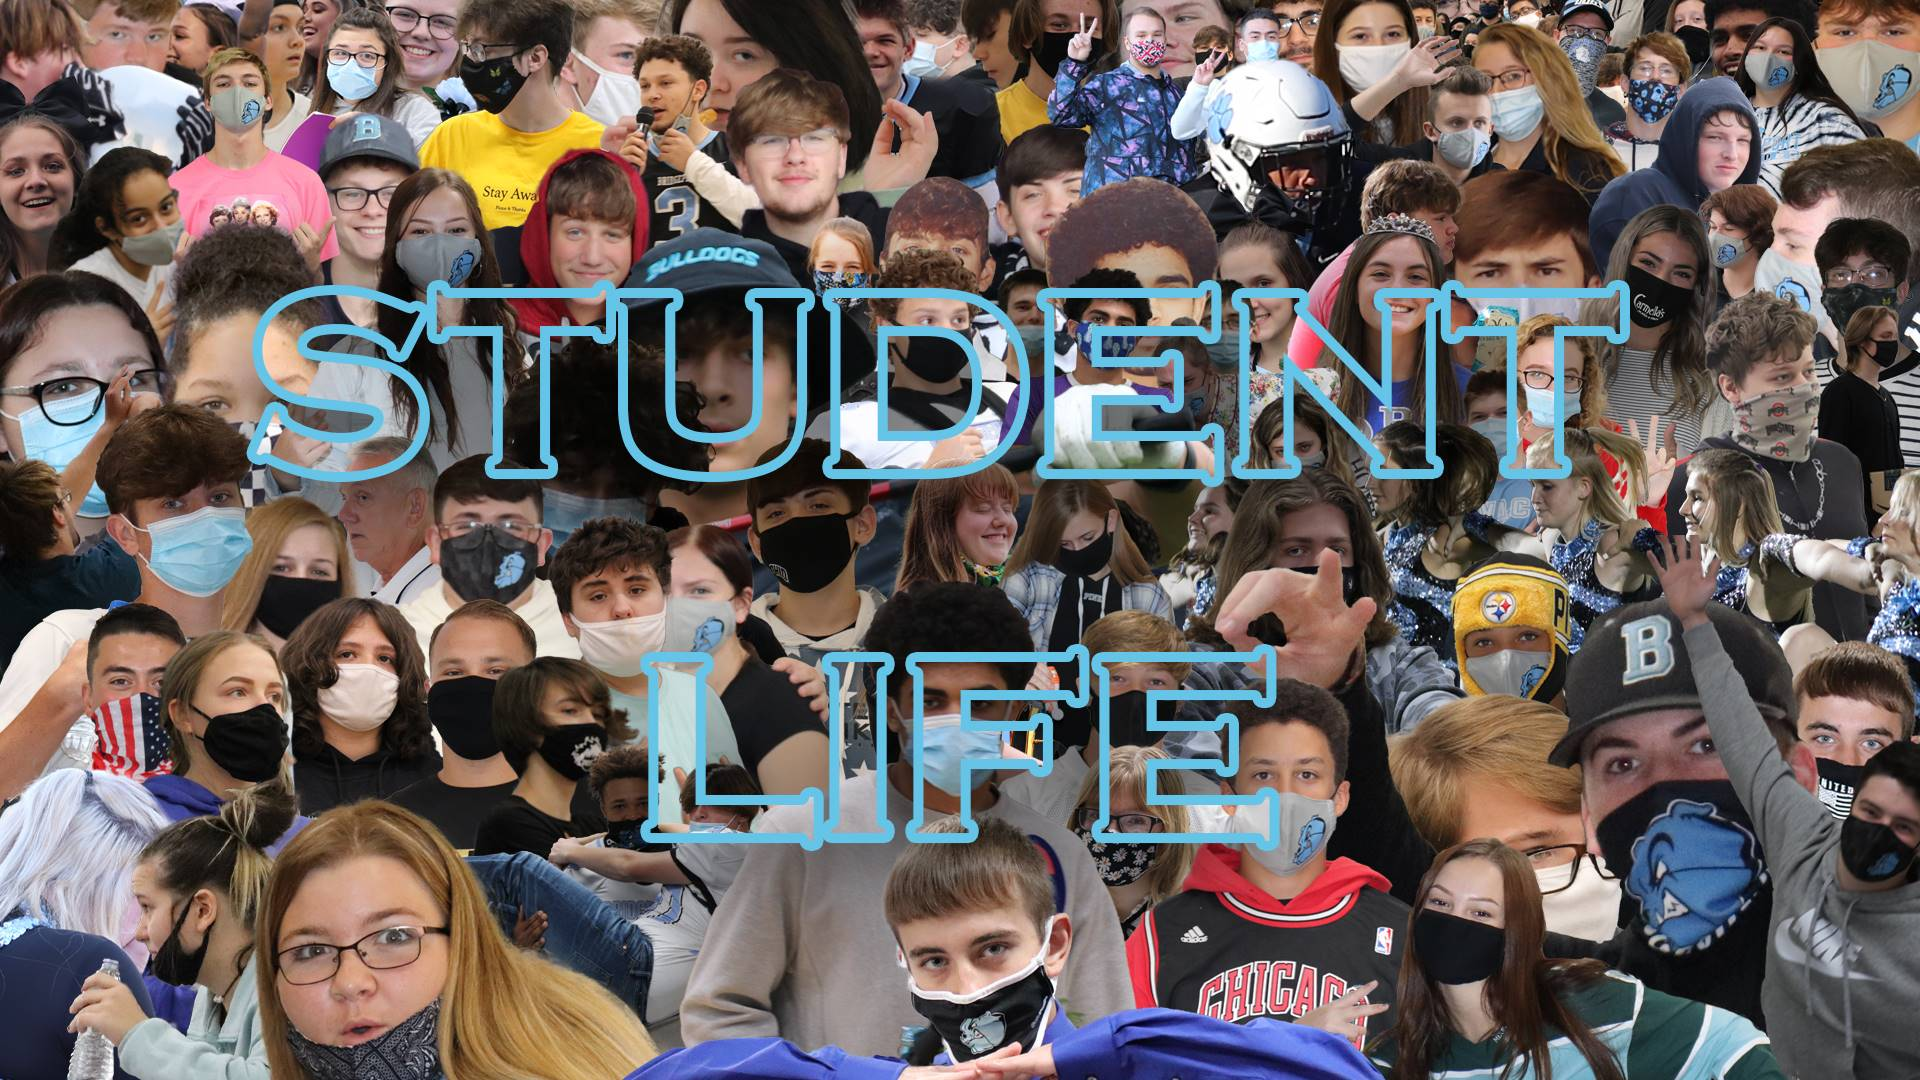 2 Connor Student Life Image